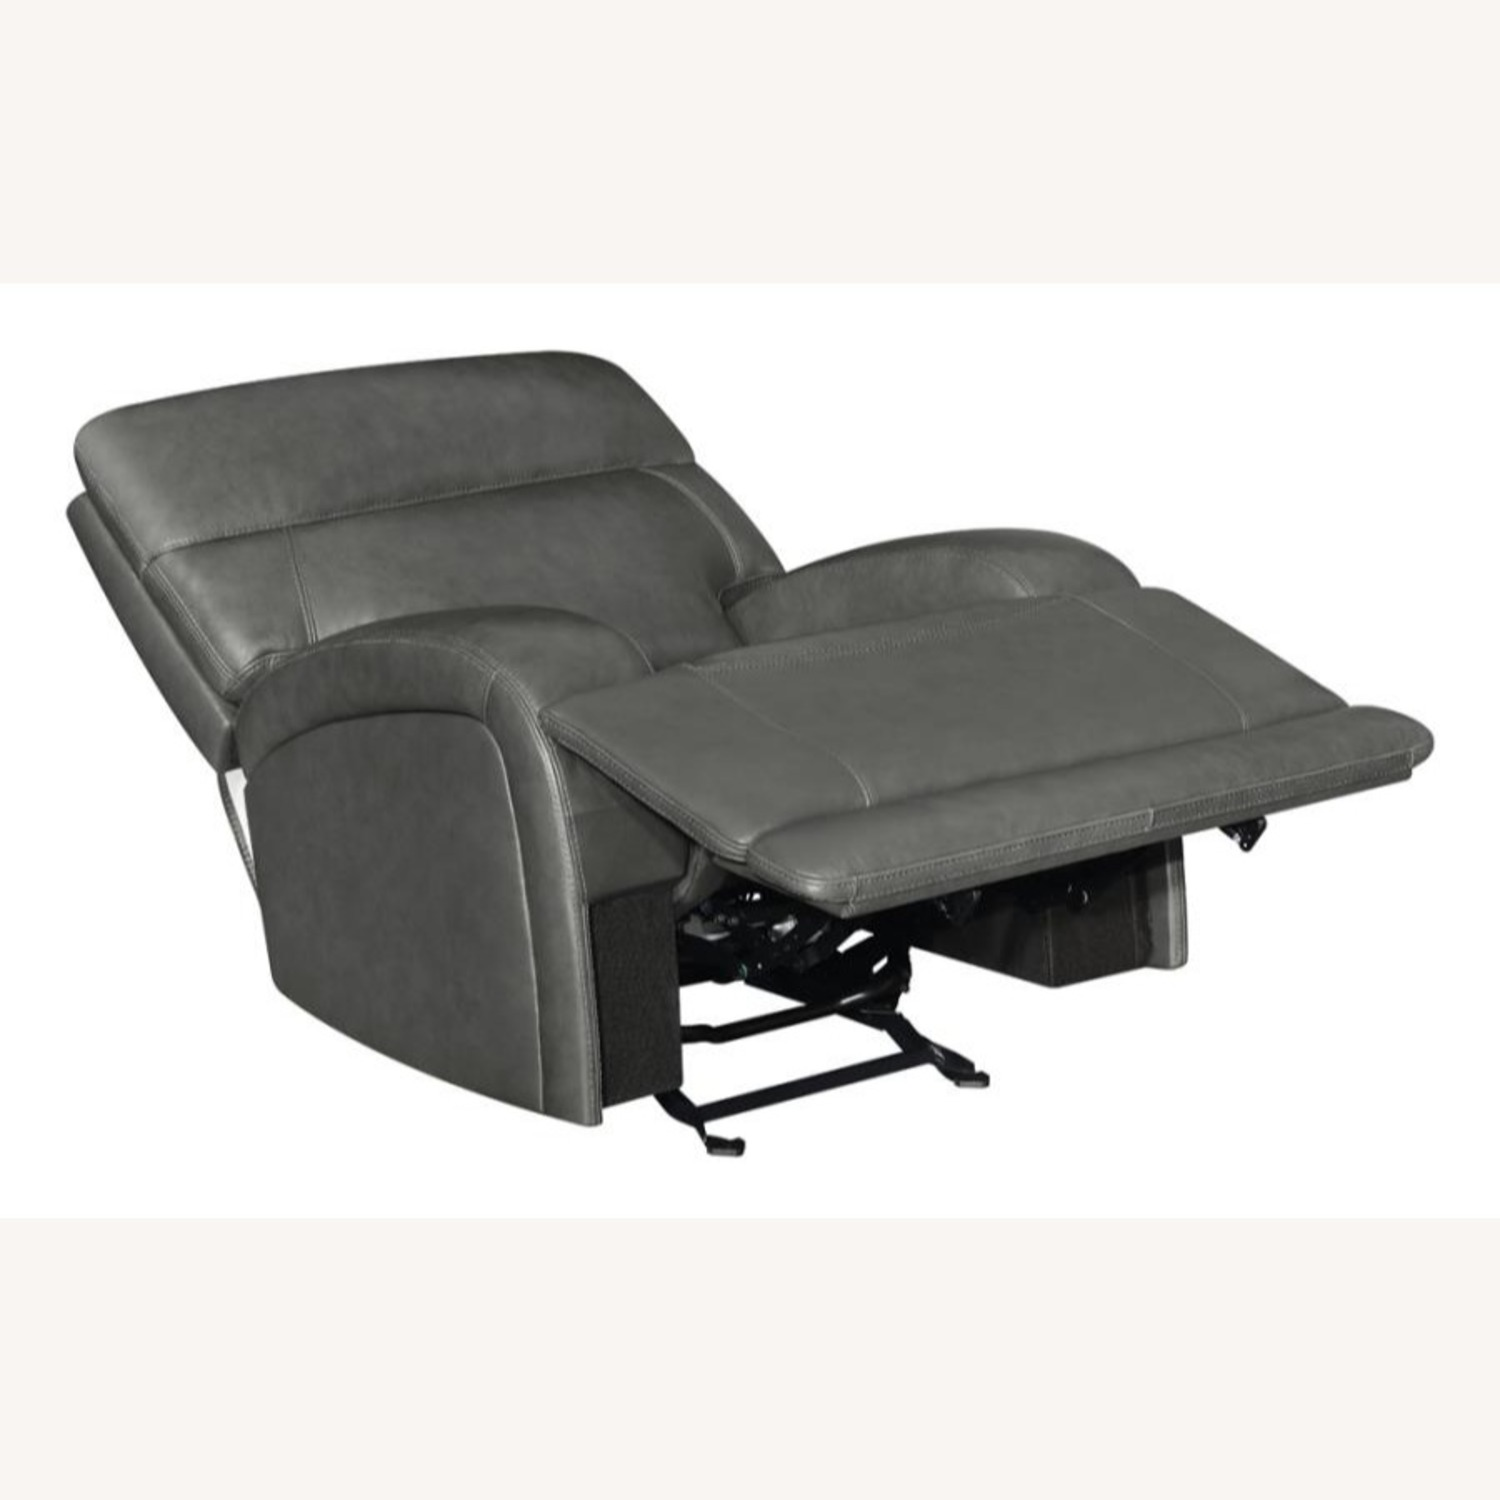 Power Recliner Chair In Charcoal Leatherette - image-1